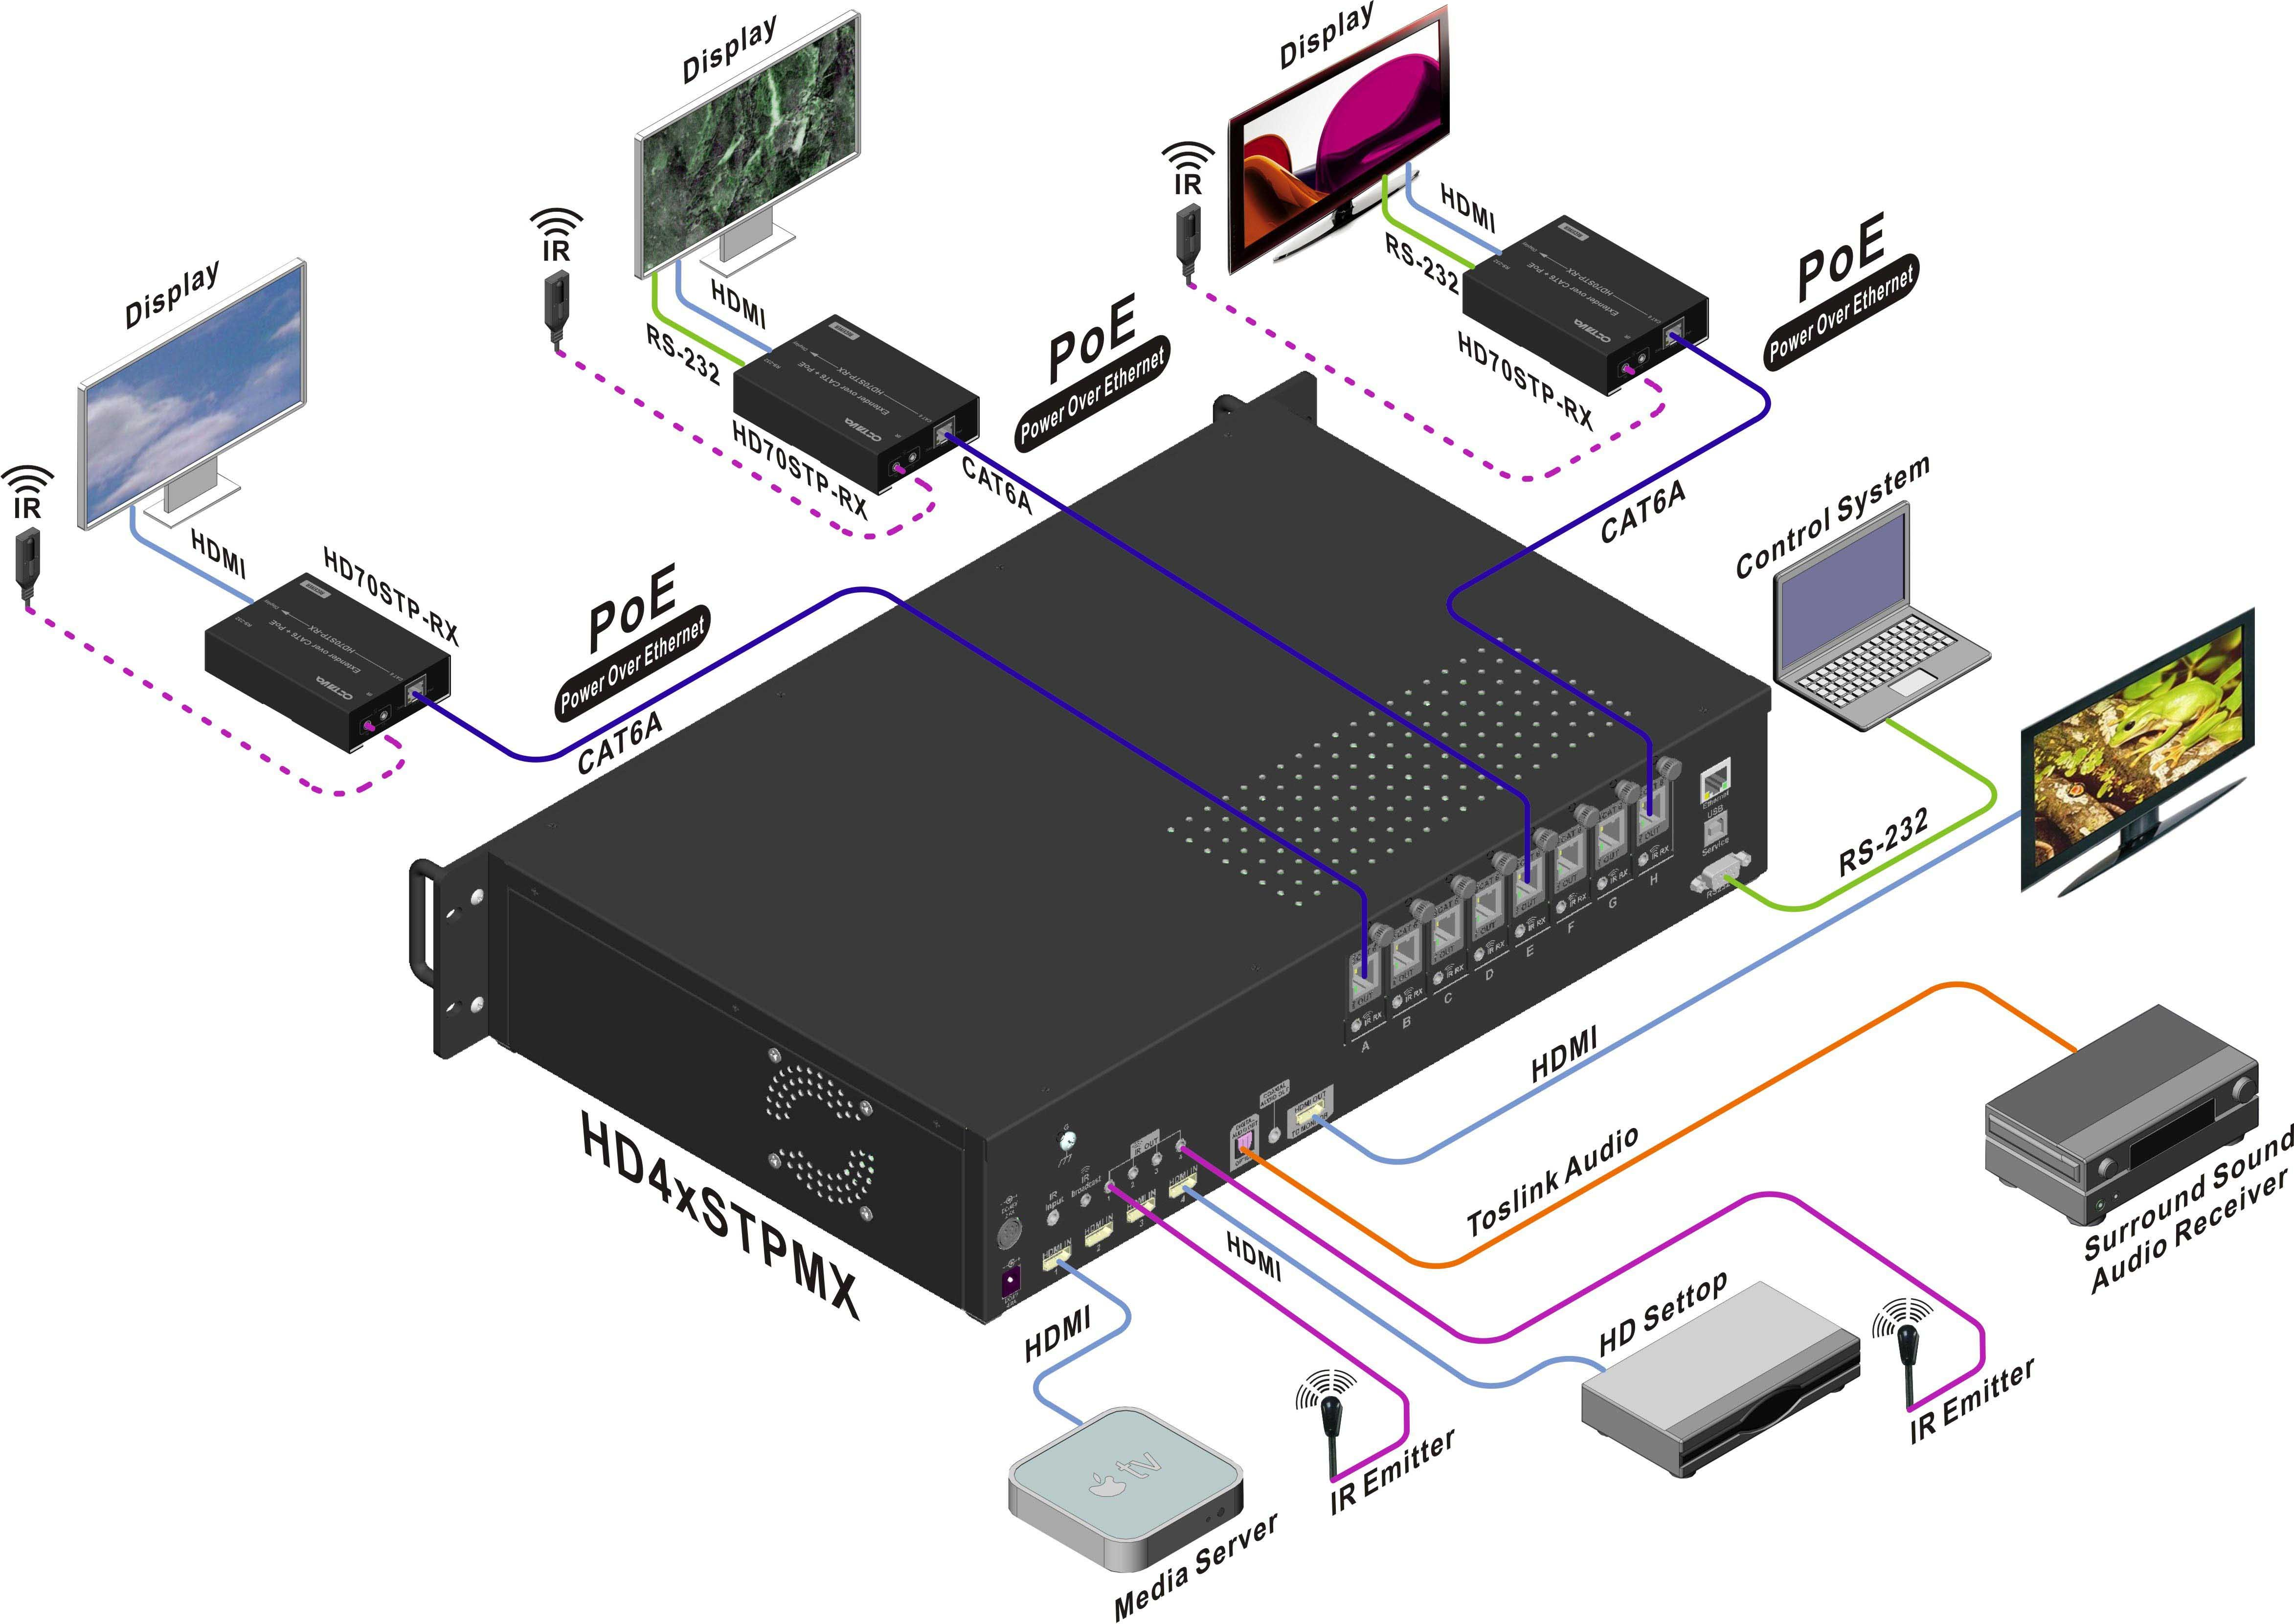 hdmi over a single cat5 or cat6 - avs forum | home theater discussions and  reviews